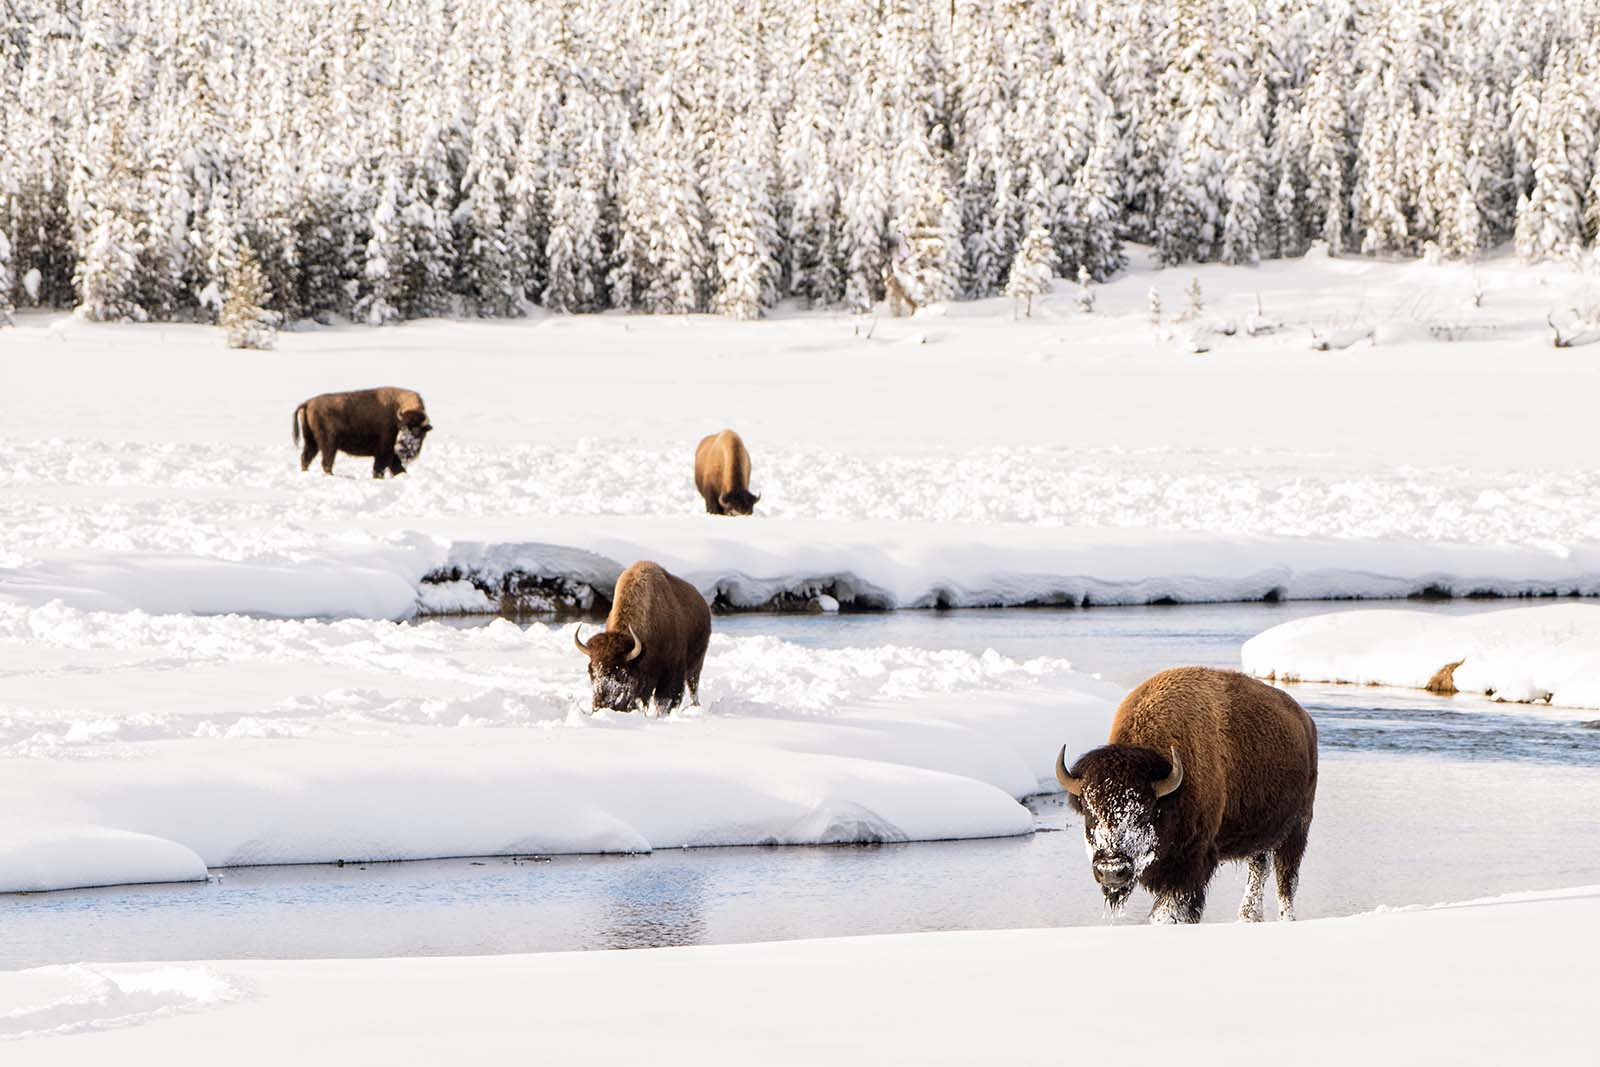 Wildlife photography ethics in America's national parks